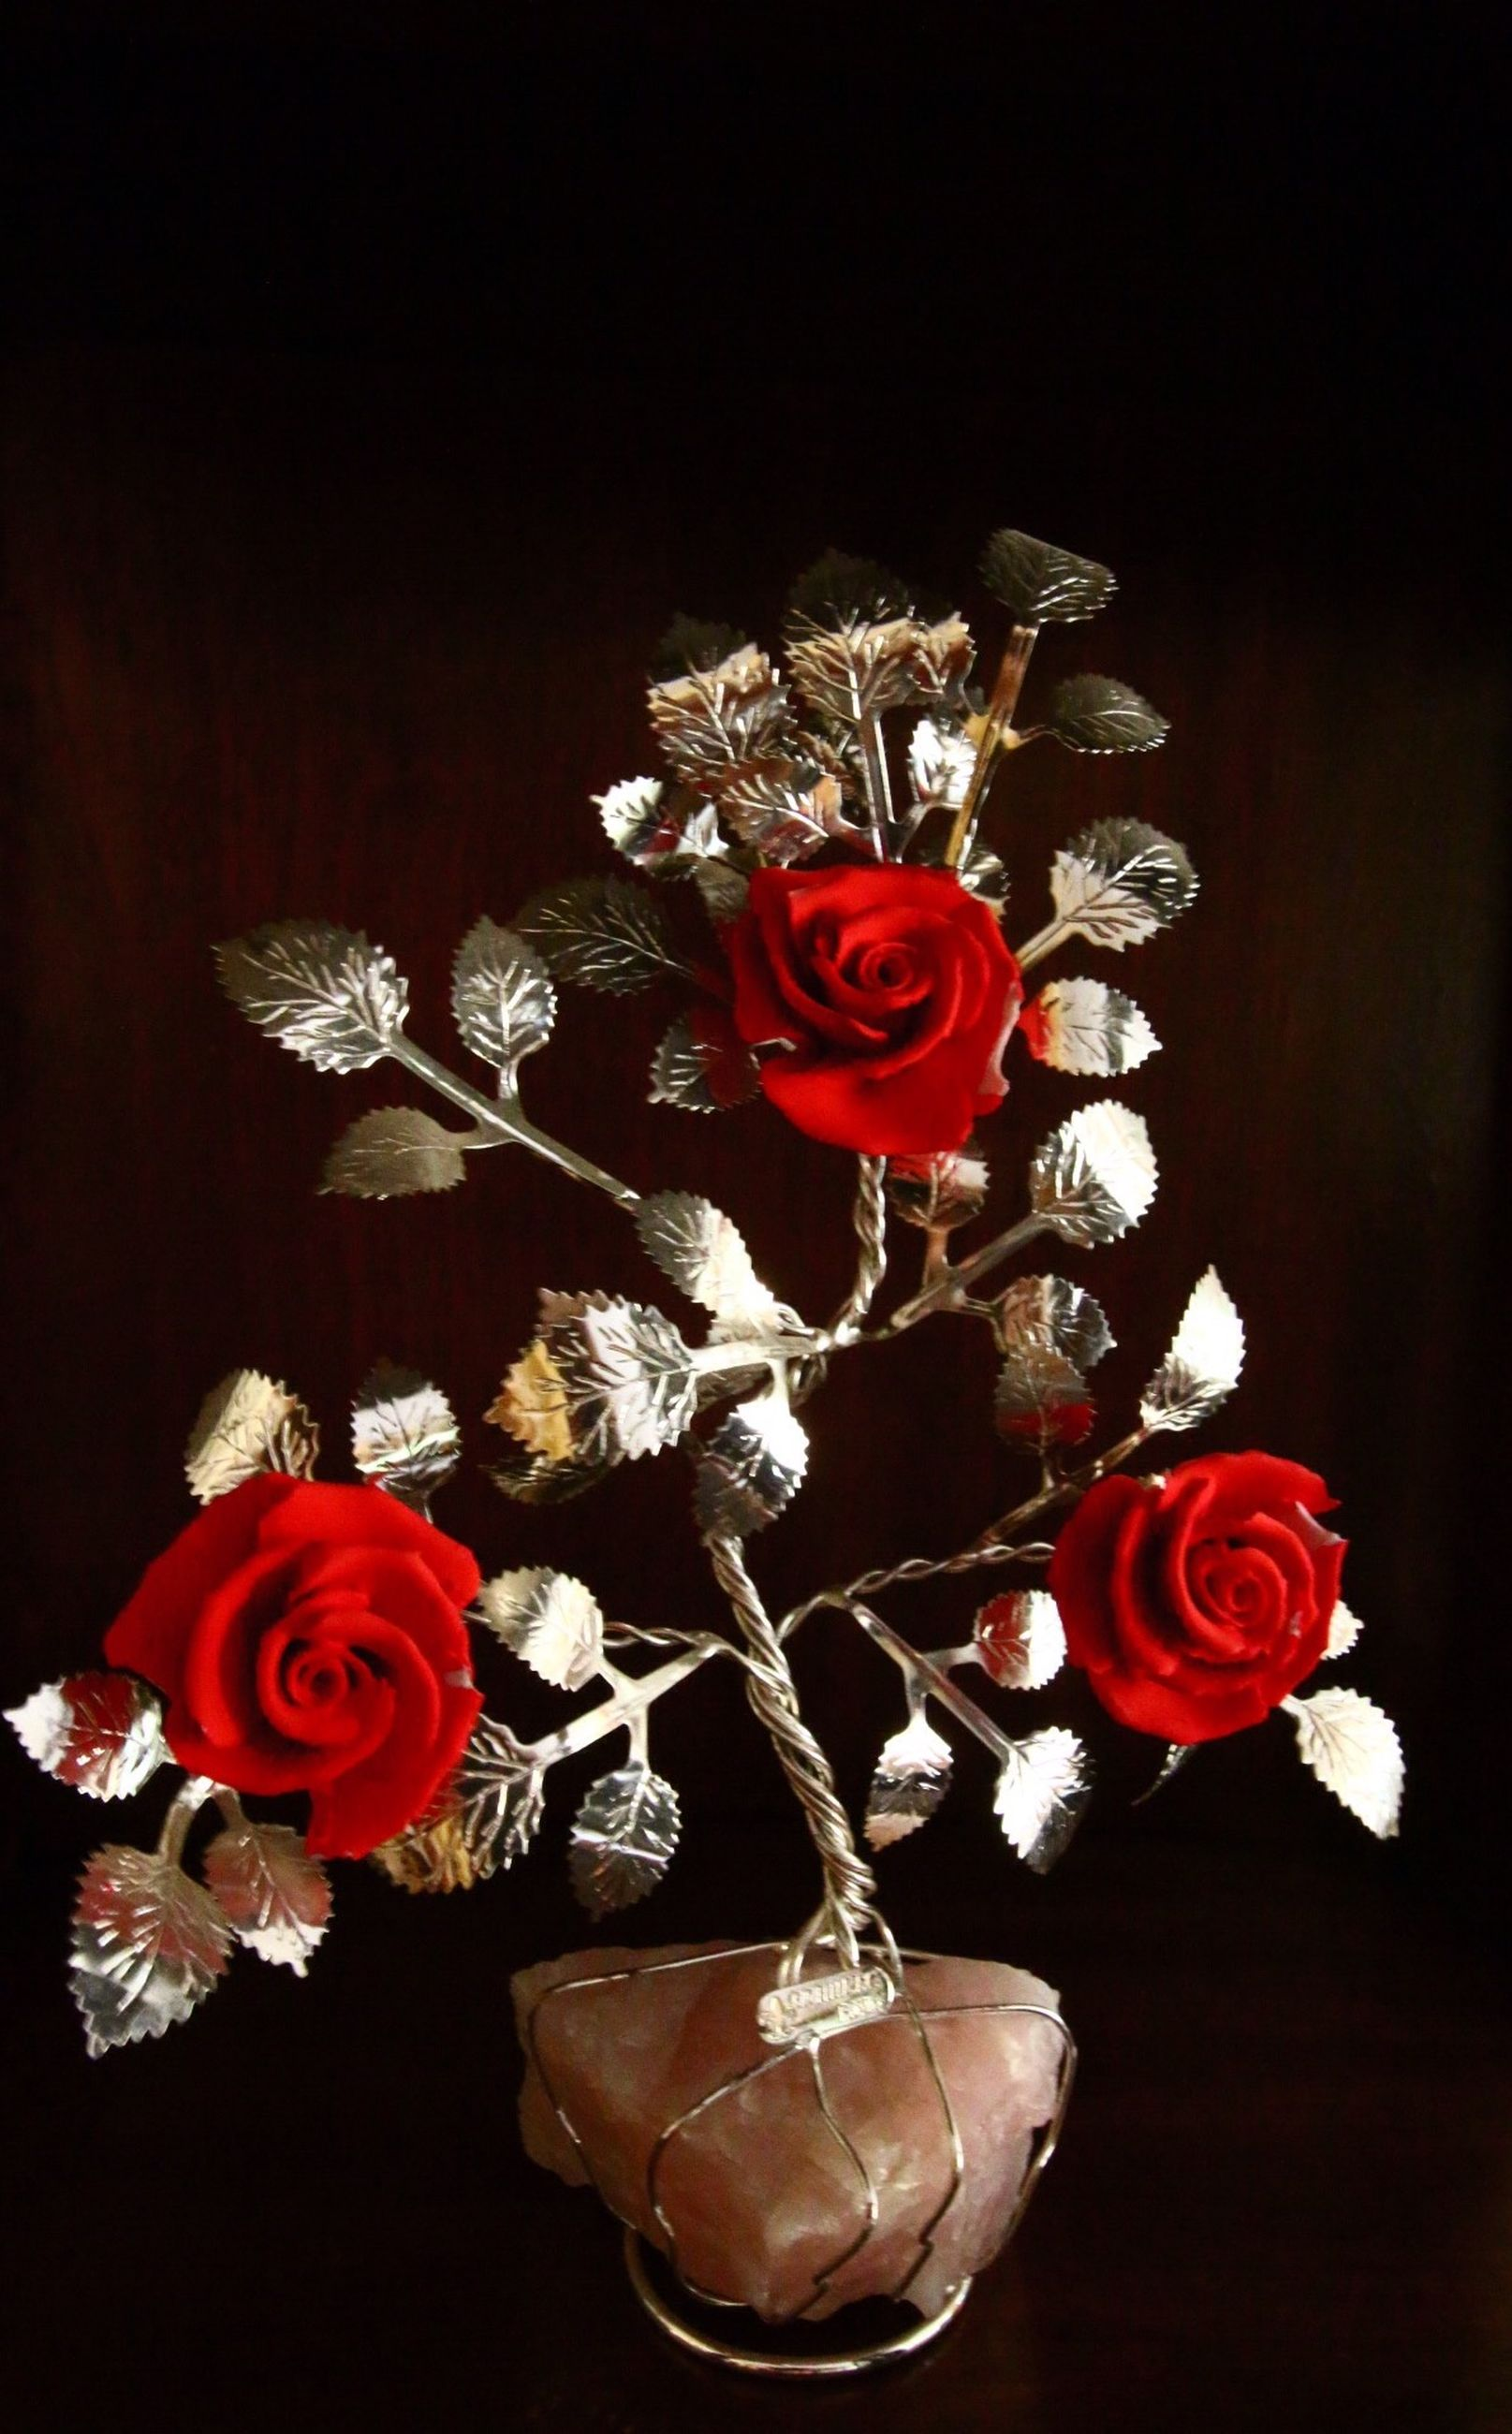 indoors, flower, red, still life, decoration, petal, rose - flower, vase, table, close-up, art and craft, art, home interior, creativity, bouquet, artificial, studio shot, high angle view, human representation, toy